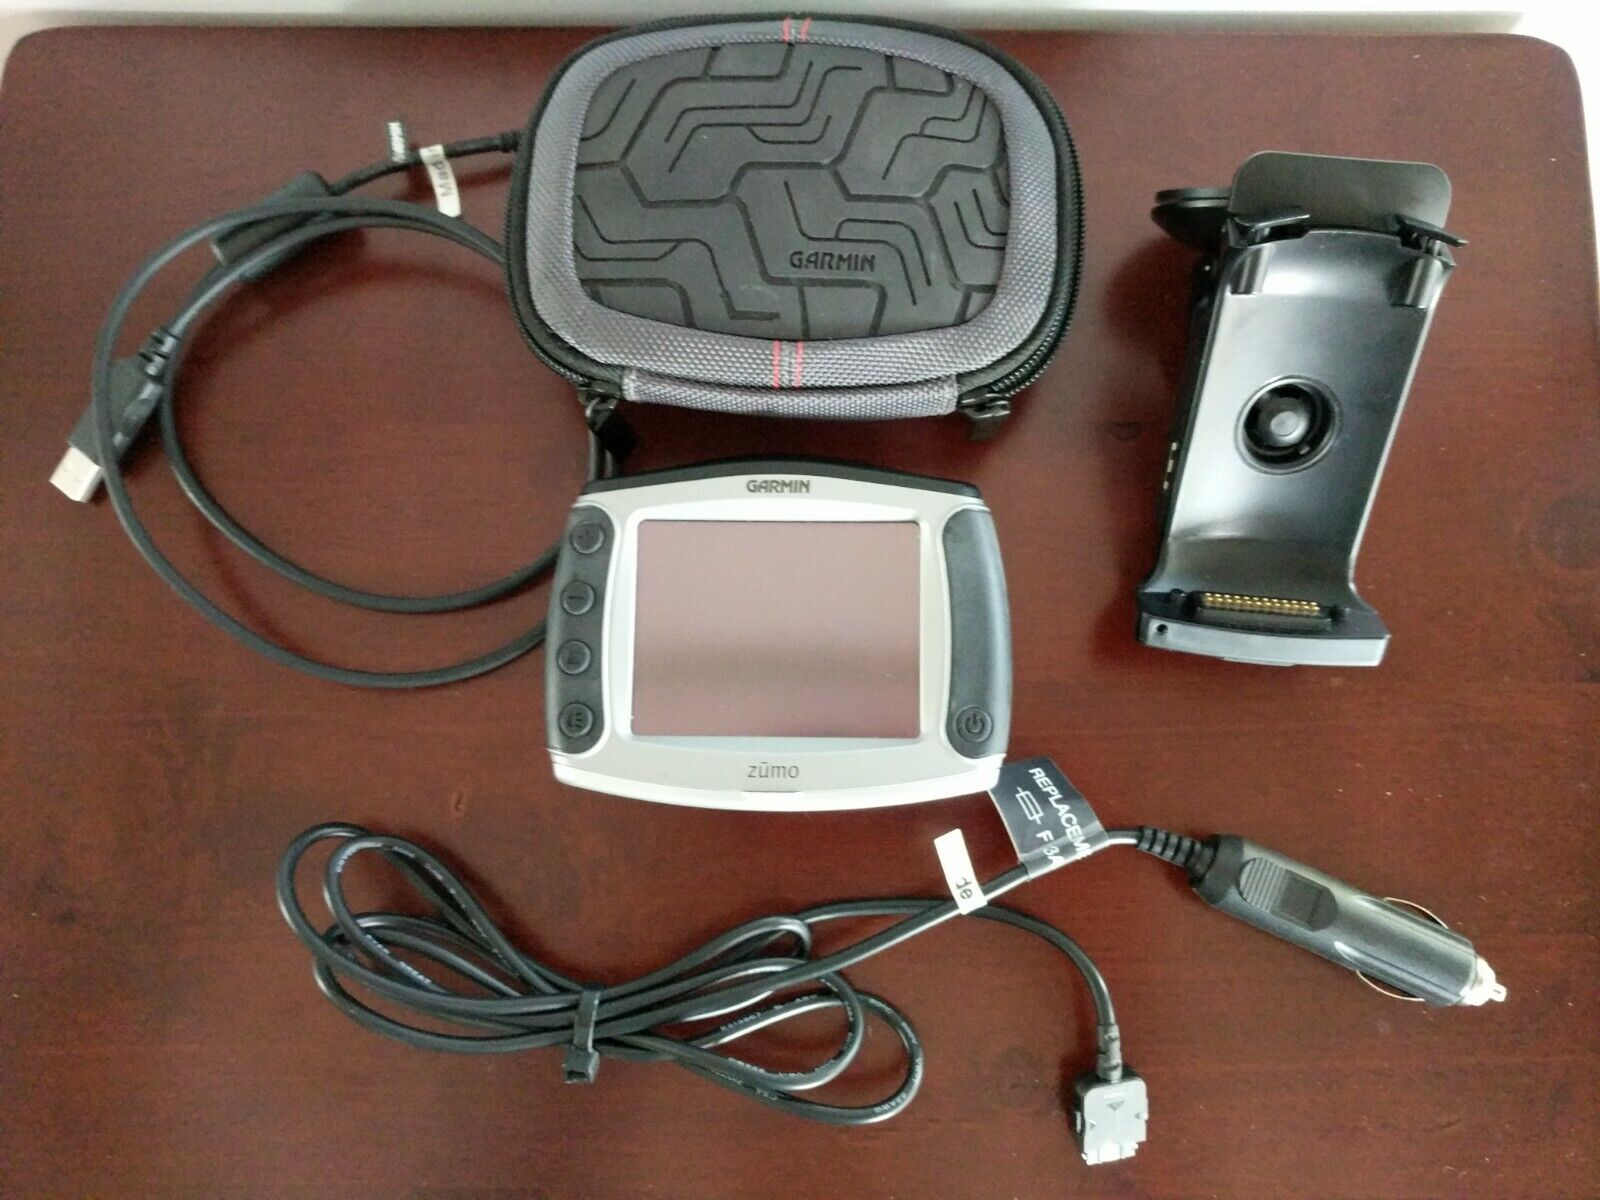 Garmin Zumo 550 Car/Motorcycle GPS Navigator With Cables, Car Mount And Case - $150.00